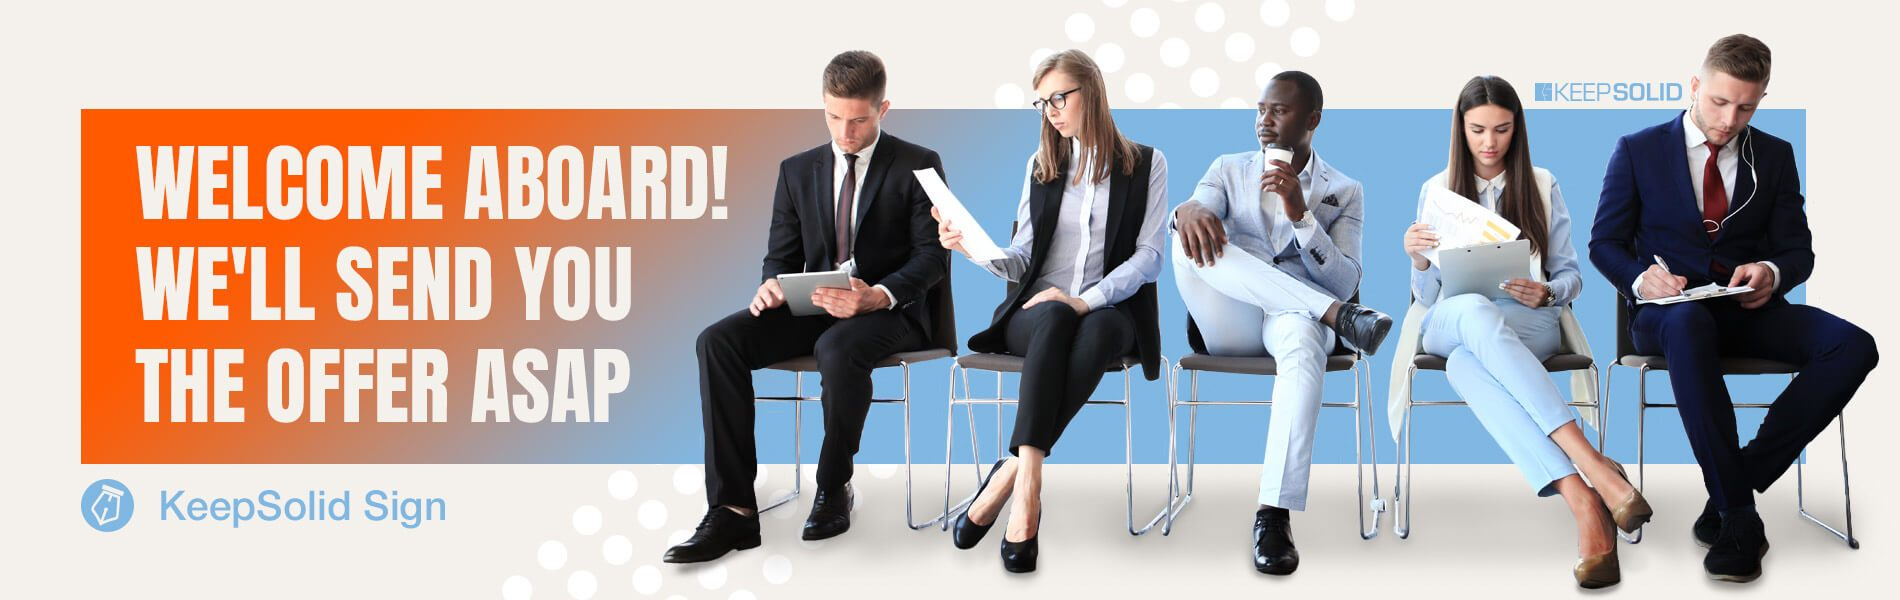 Candidates for job interview at HR and eSigning offers.